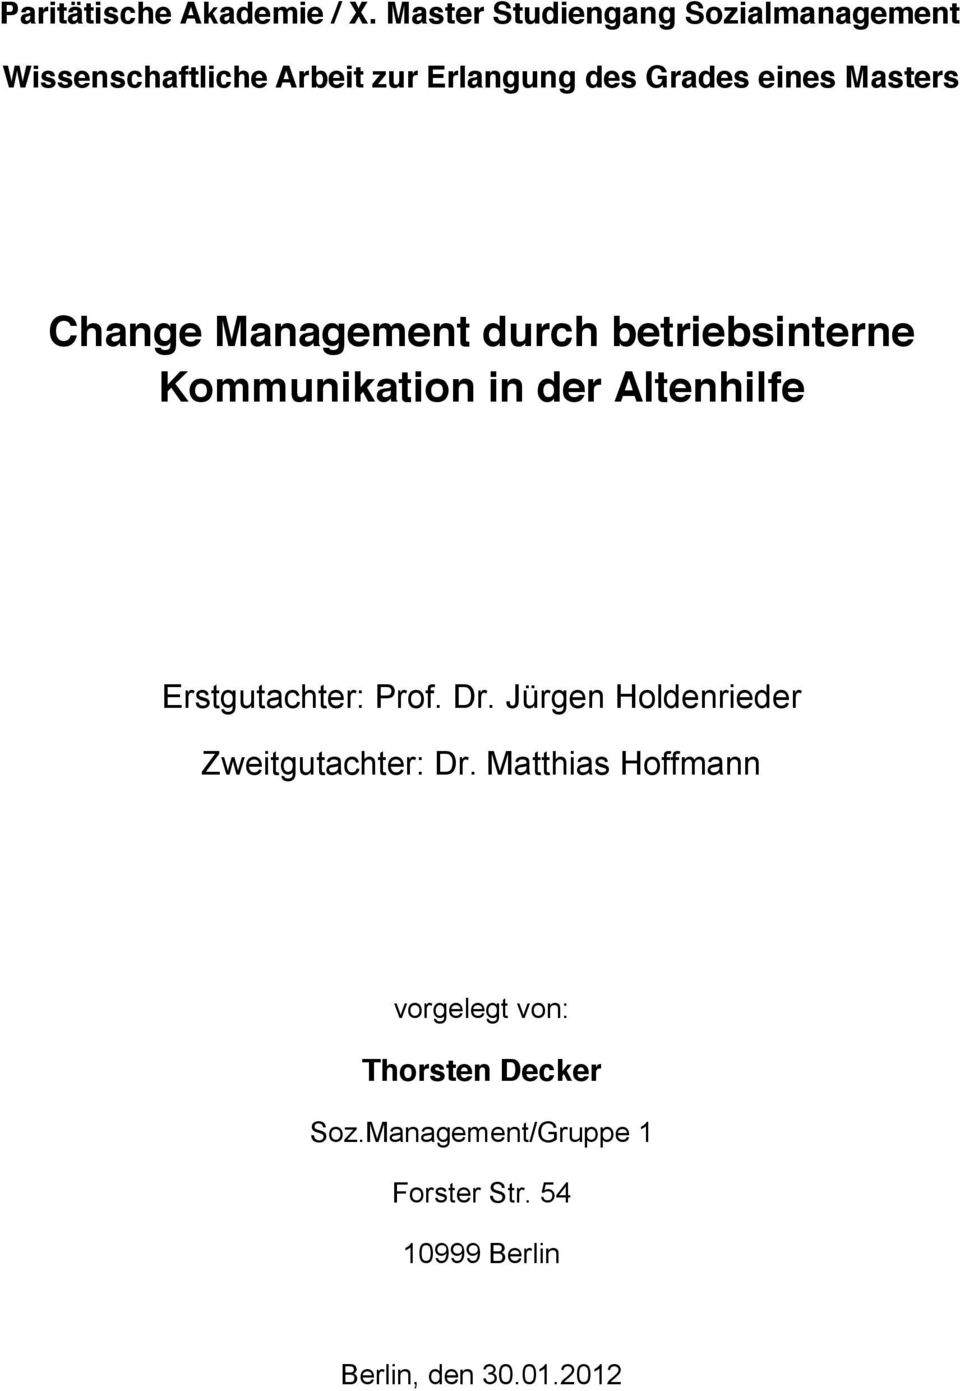 Masters Change Management durch betriebsinterne Kommunikation in der Altenhilfe Erstgutachter: